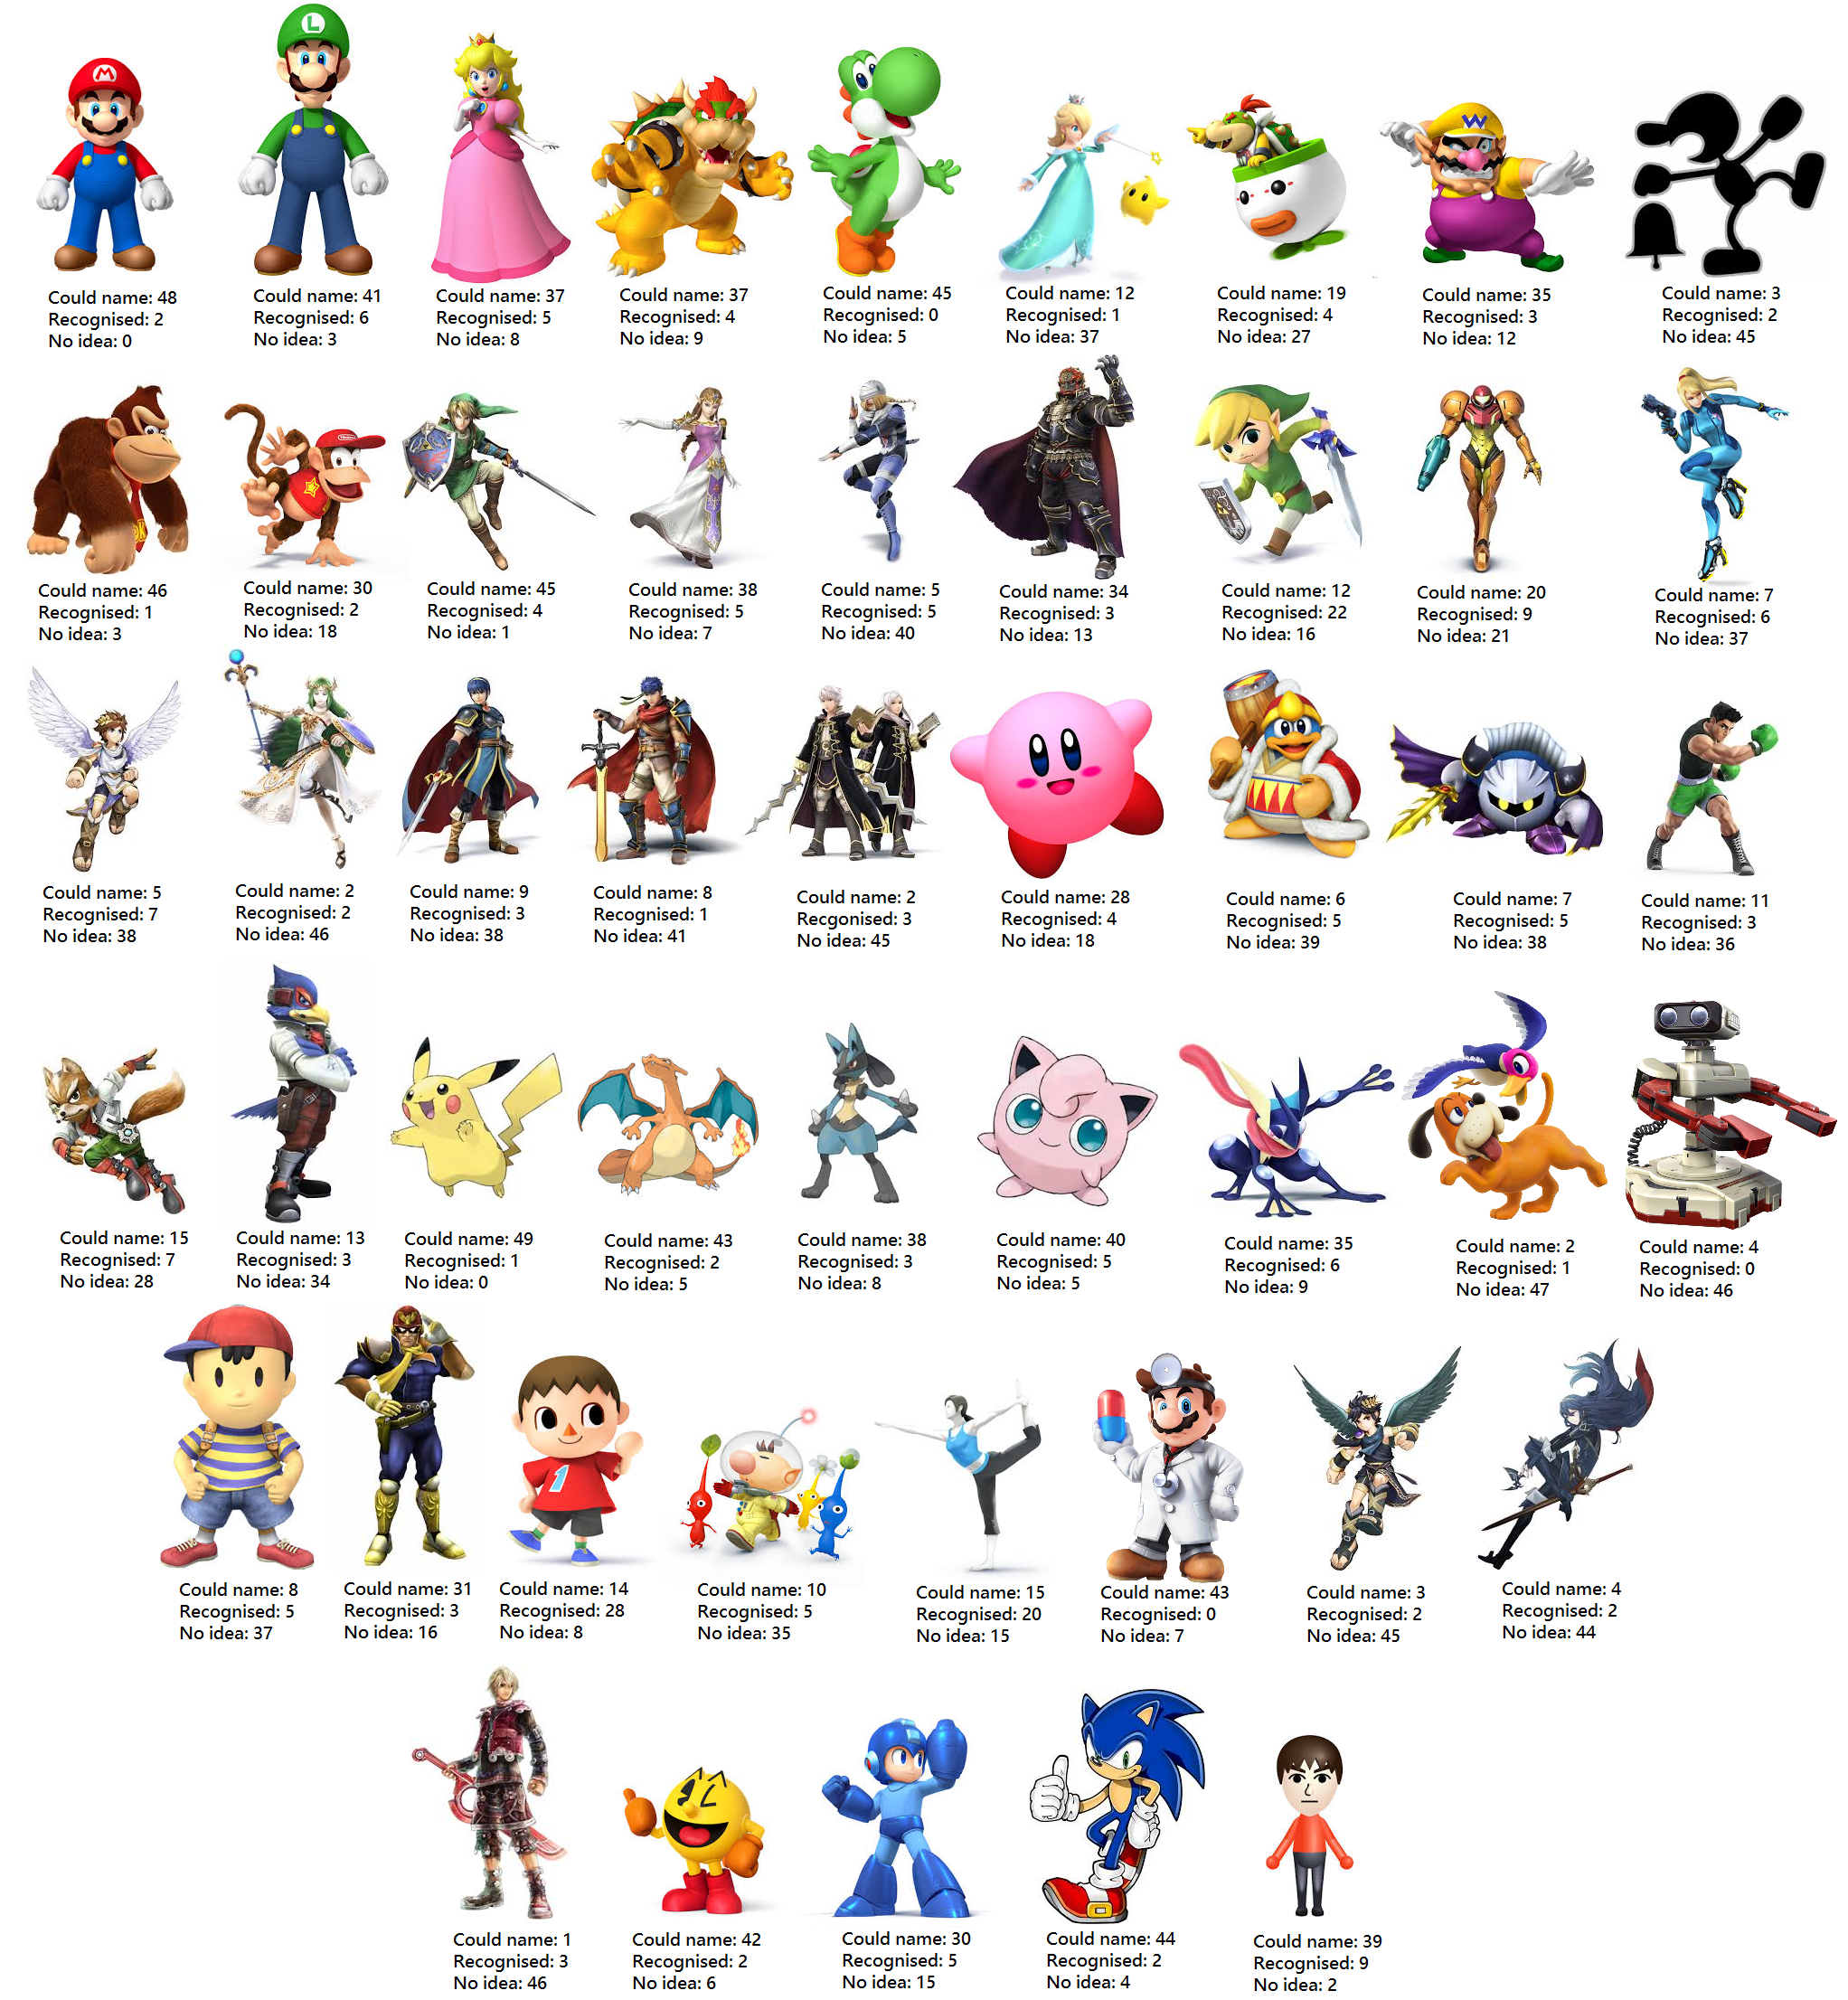 50 Person Recognition Test For The Ssb4 Roster Super Smash